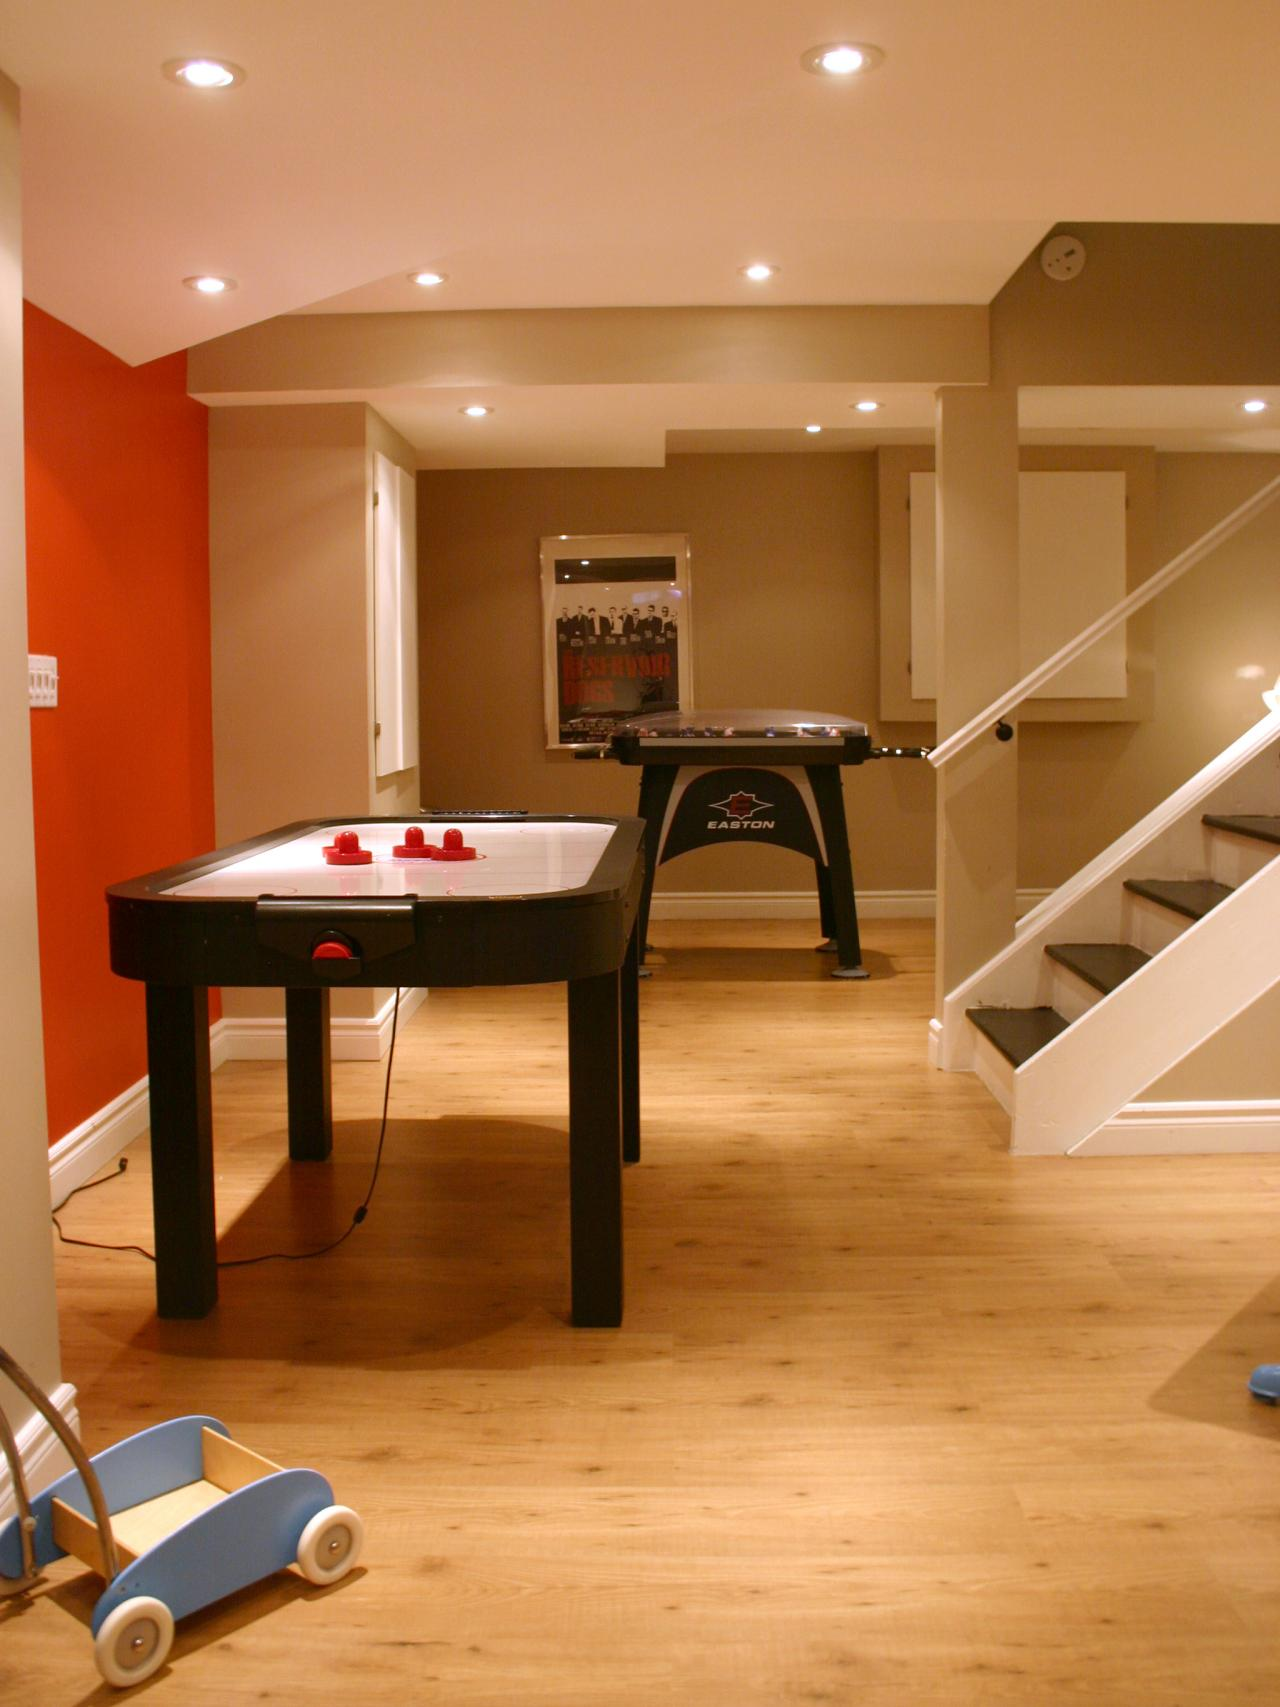 Basement design ideas decorating and design ideas for interior rooms hgtv - Basements ideas ...